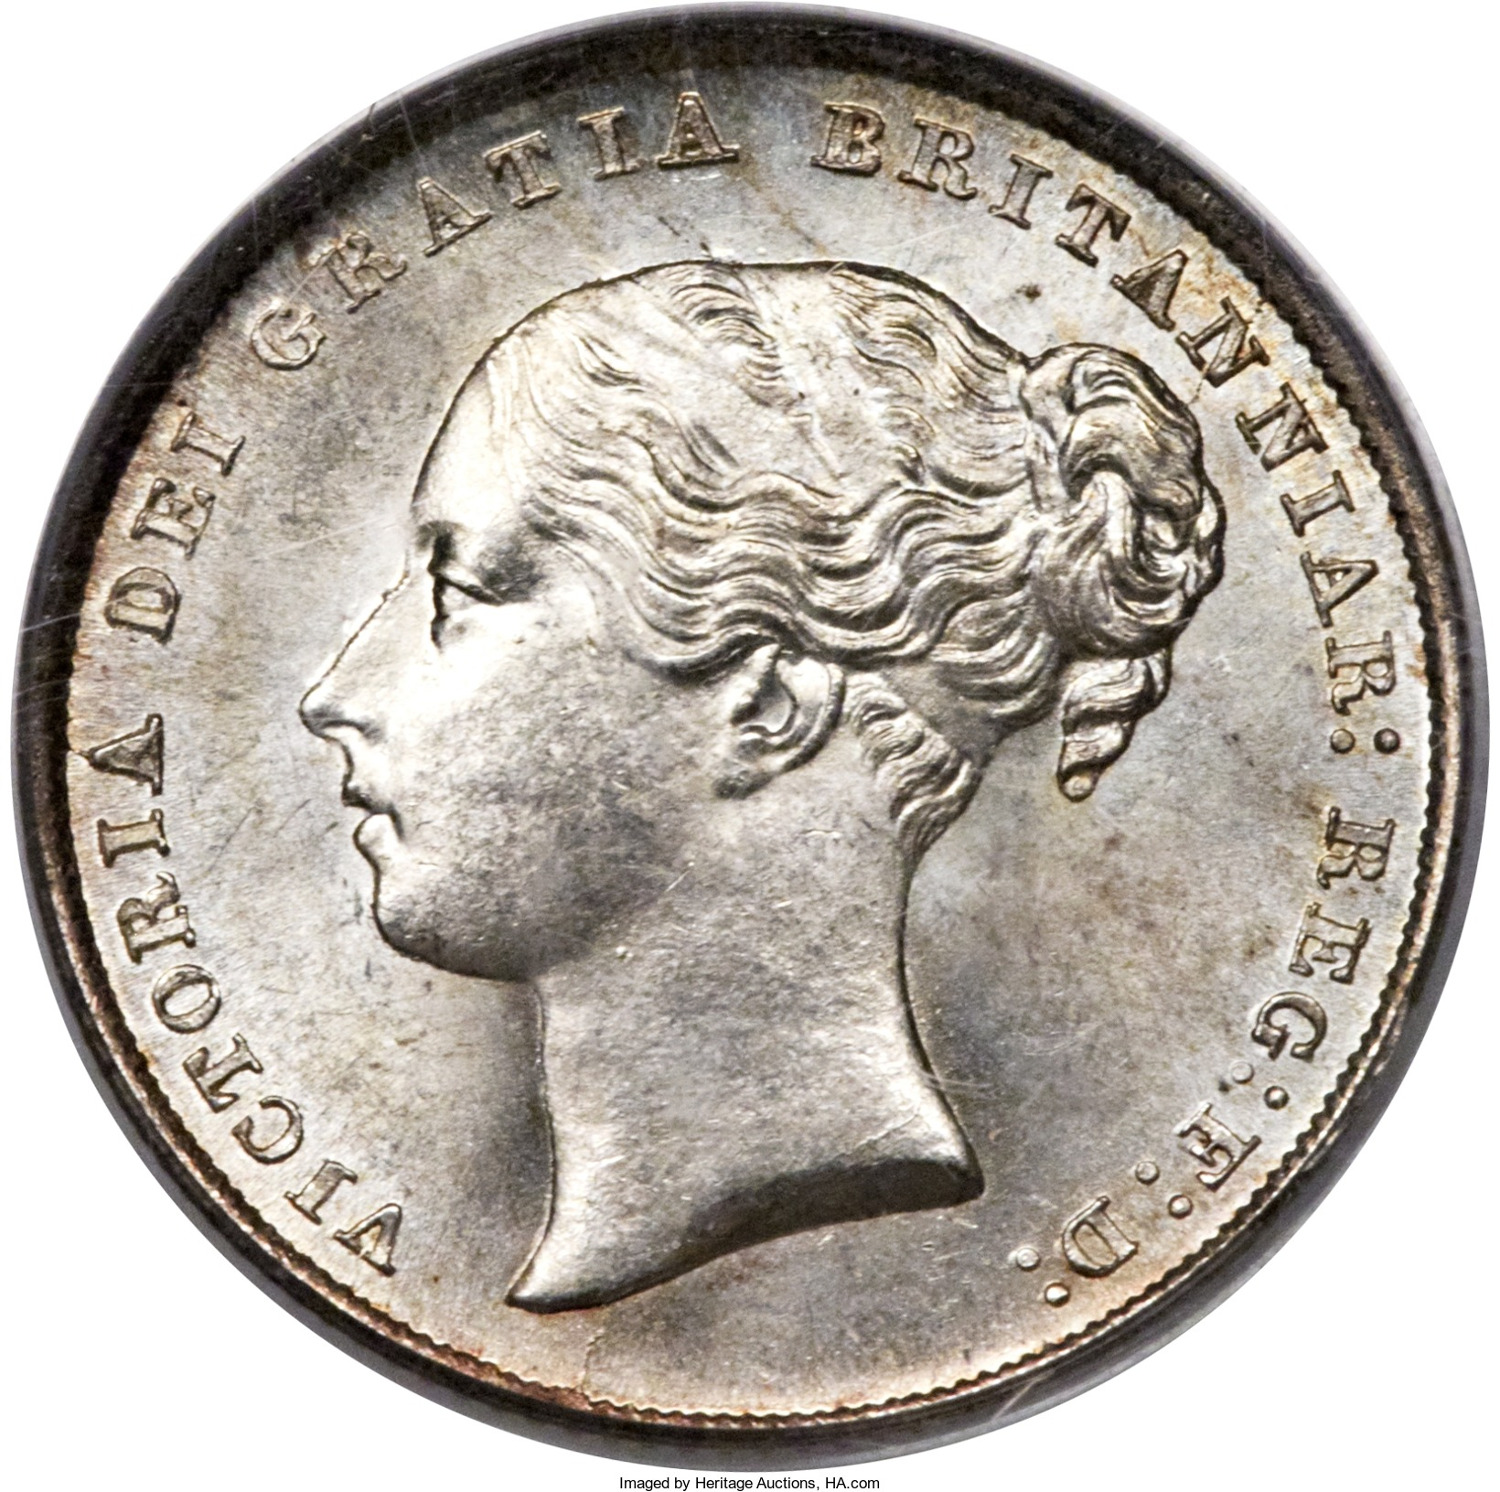 Shilling: Photo Coin - Shilling, Queen Victoria, Great Britain, 1844